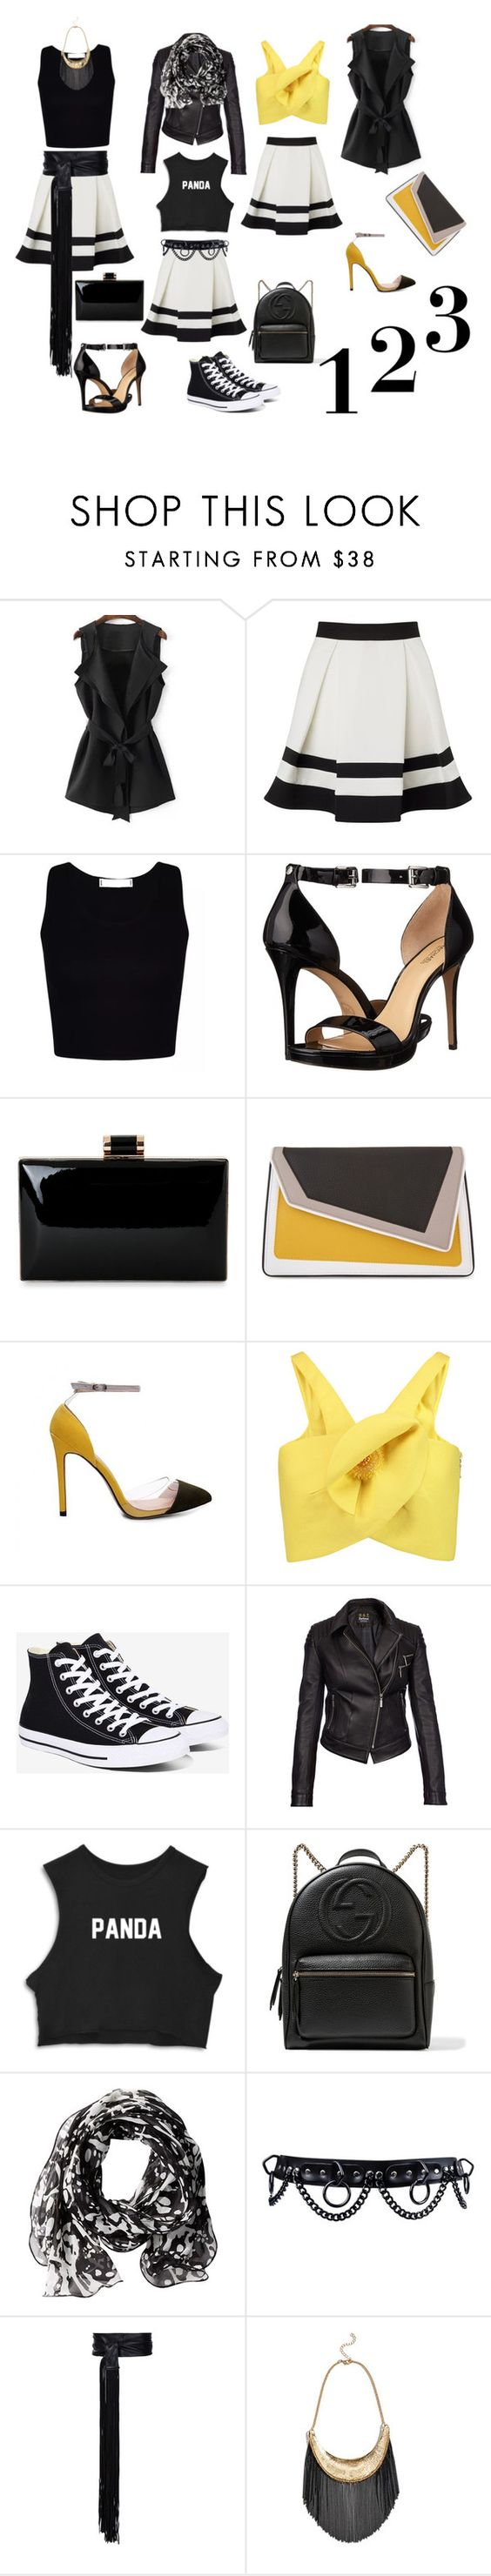 """""""Three Times Is A Charm....."""" by staceyflack ❤ liked on Polyvore featuring Lipsy, MICHAEL Michael Kors, âme moi, Delpozo, Converse, Barbour International, Gucci, Calvin Klein, Alexandre Vauthier and GUESS by Marciano"""